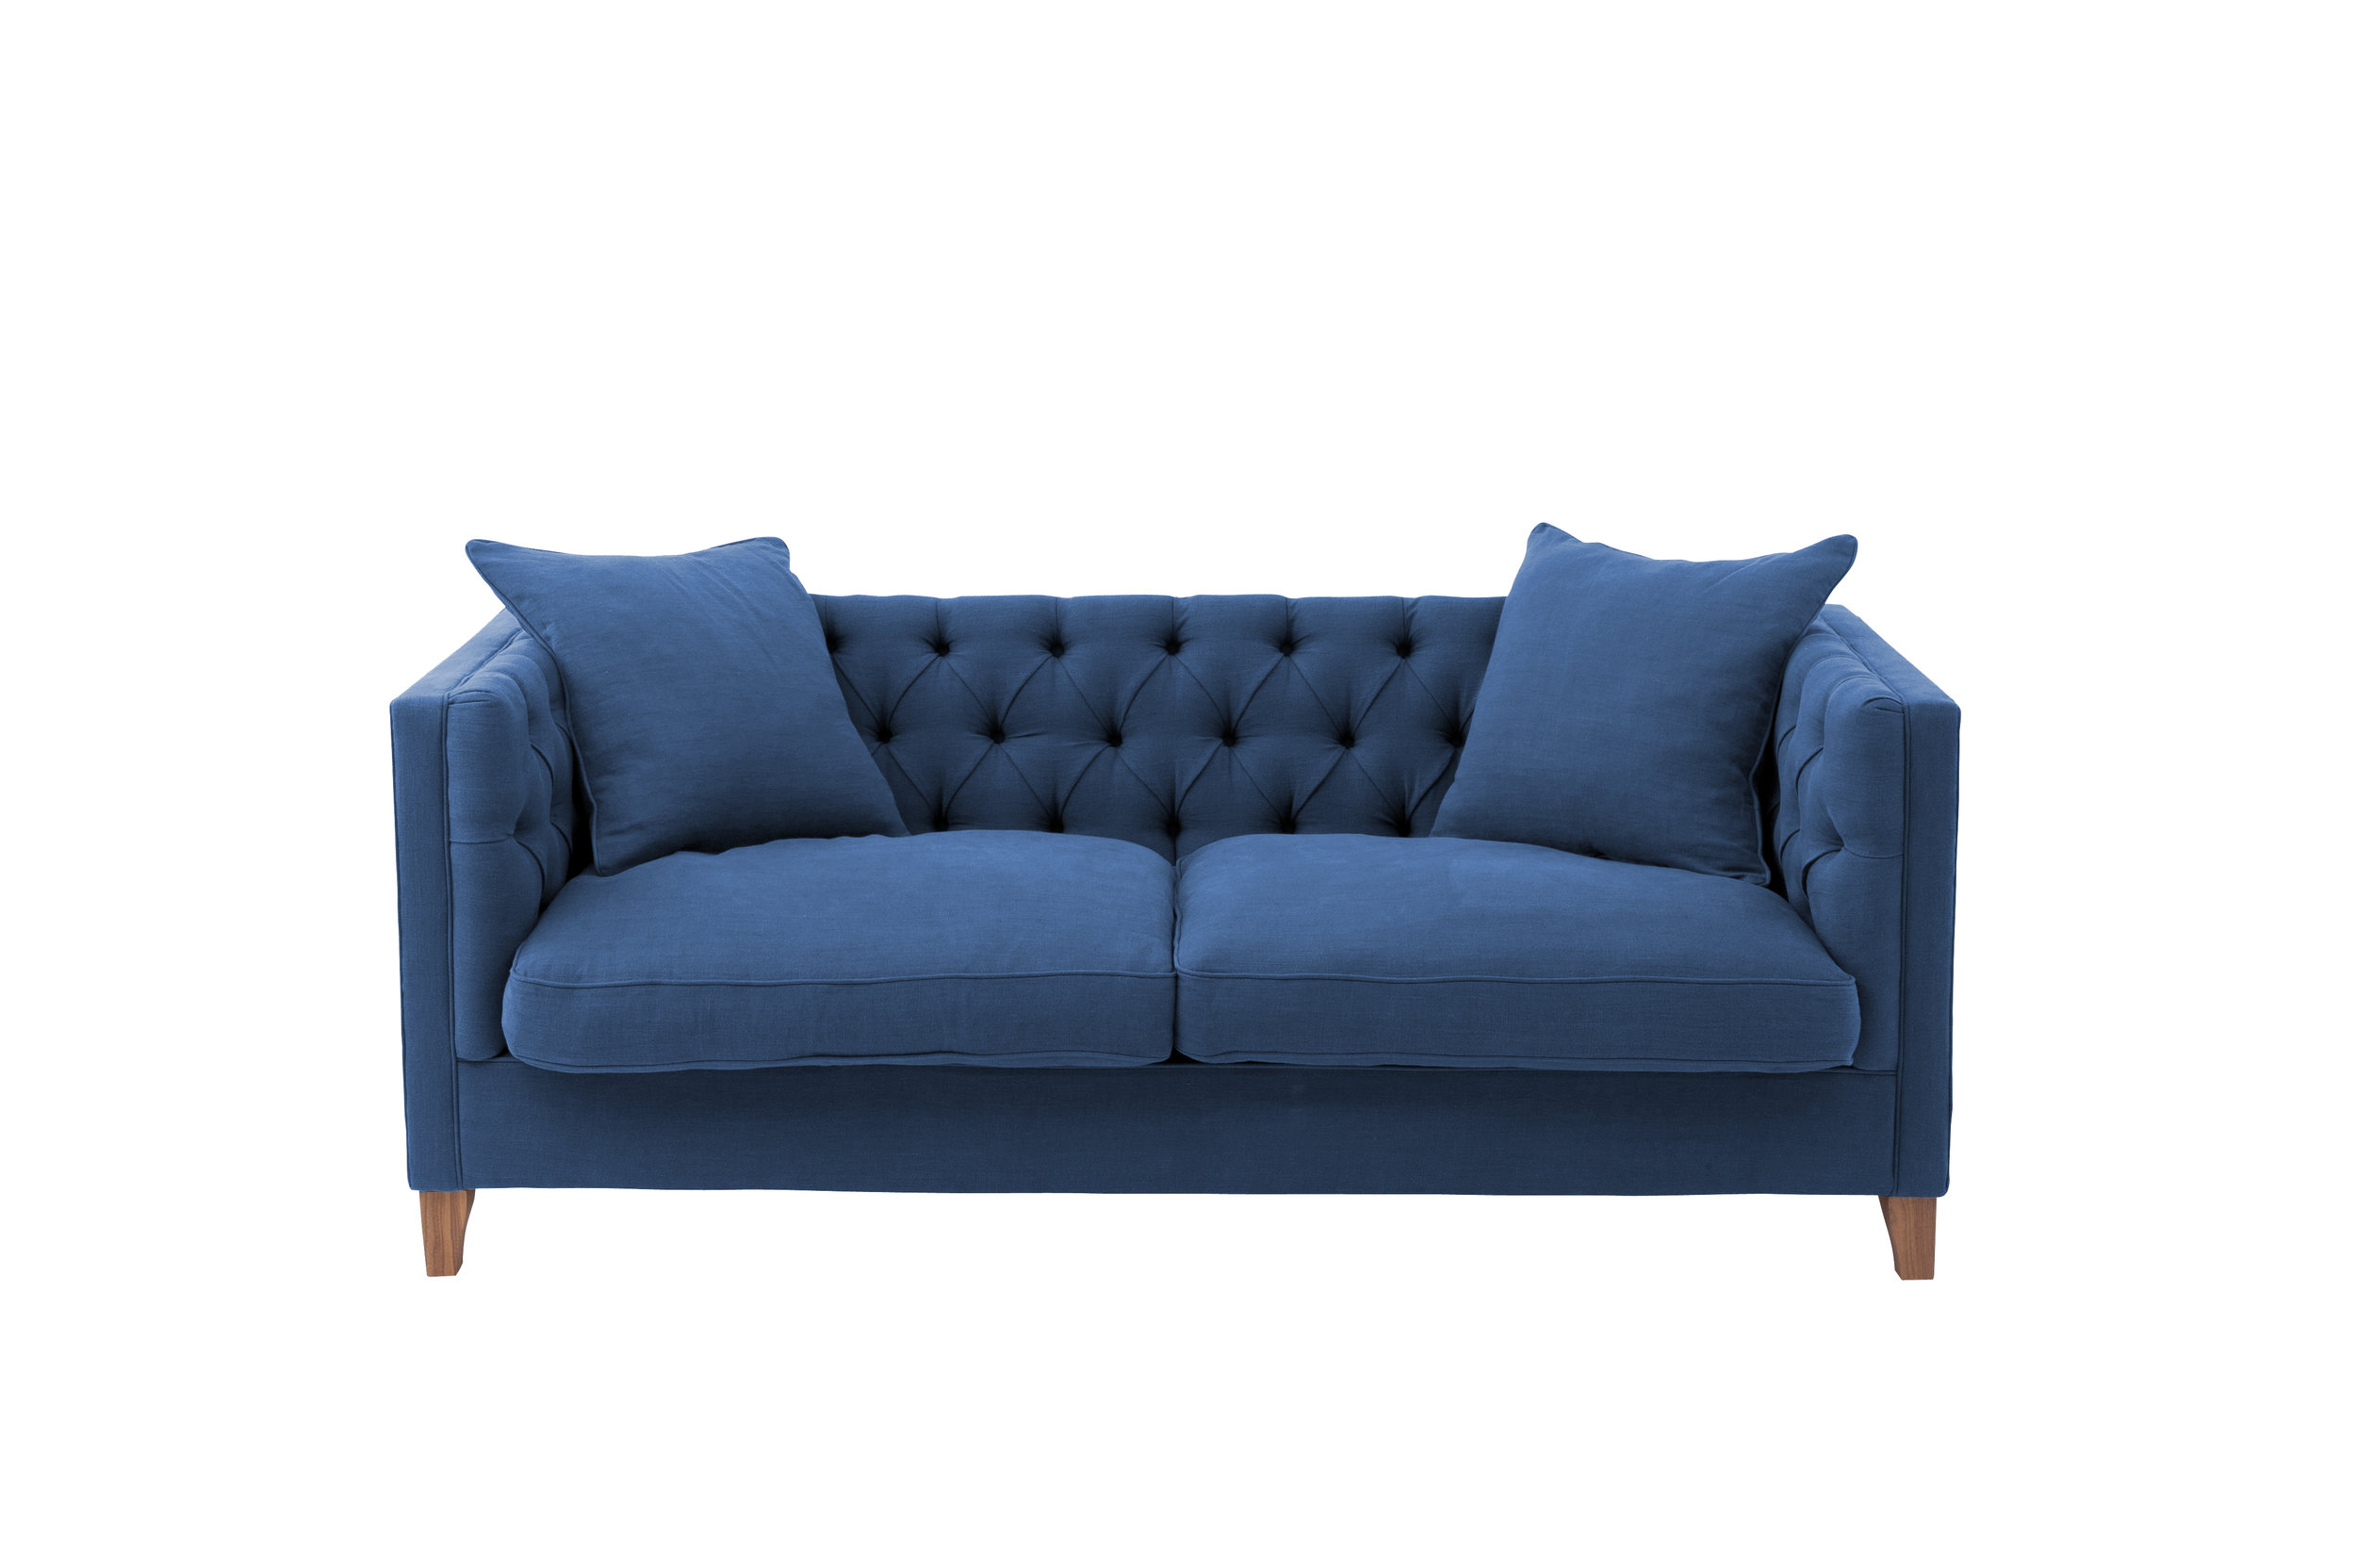 Sofas-Stuff-Haresfield-large-sofa-in-Designers-Guild-Brera-Lino-Indigo-blue-Portrait-2.jpg